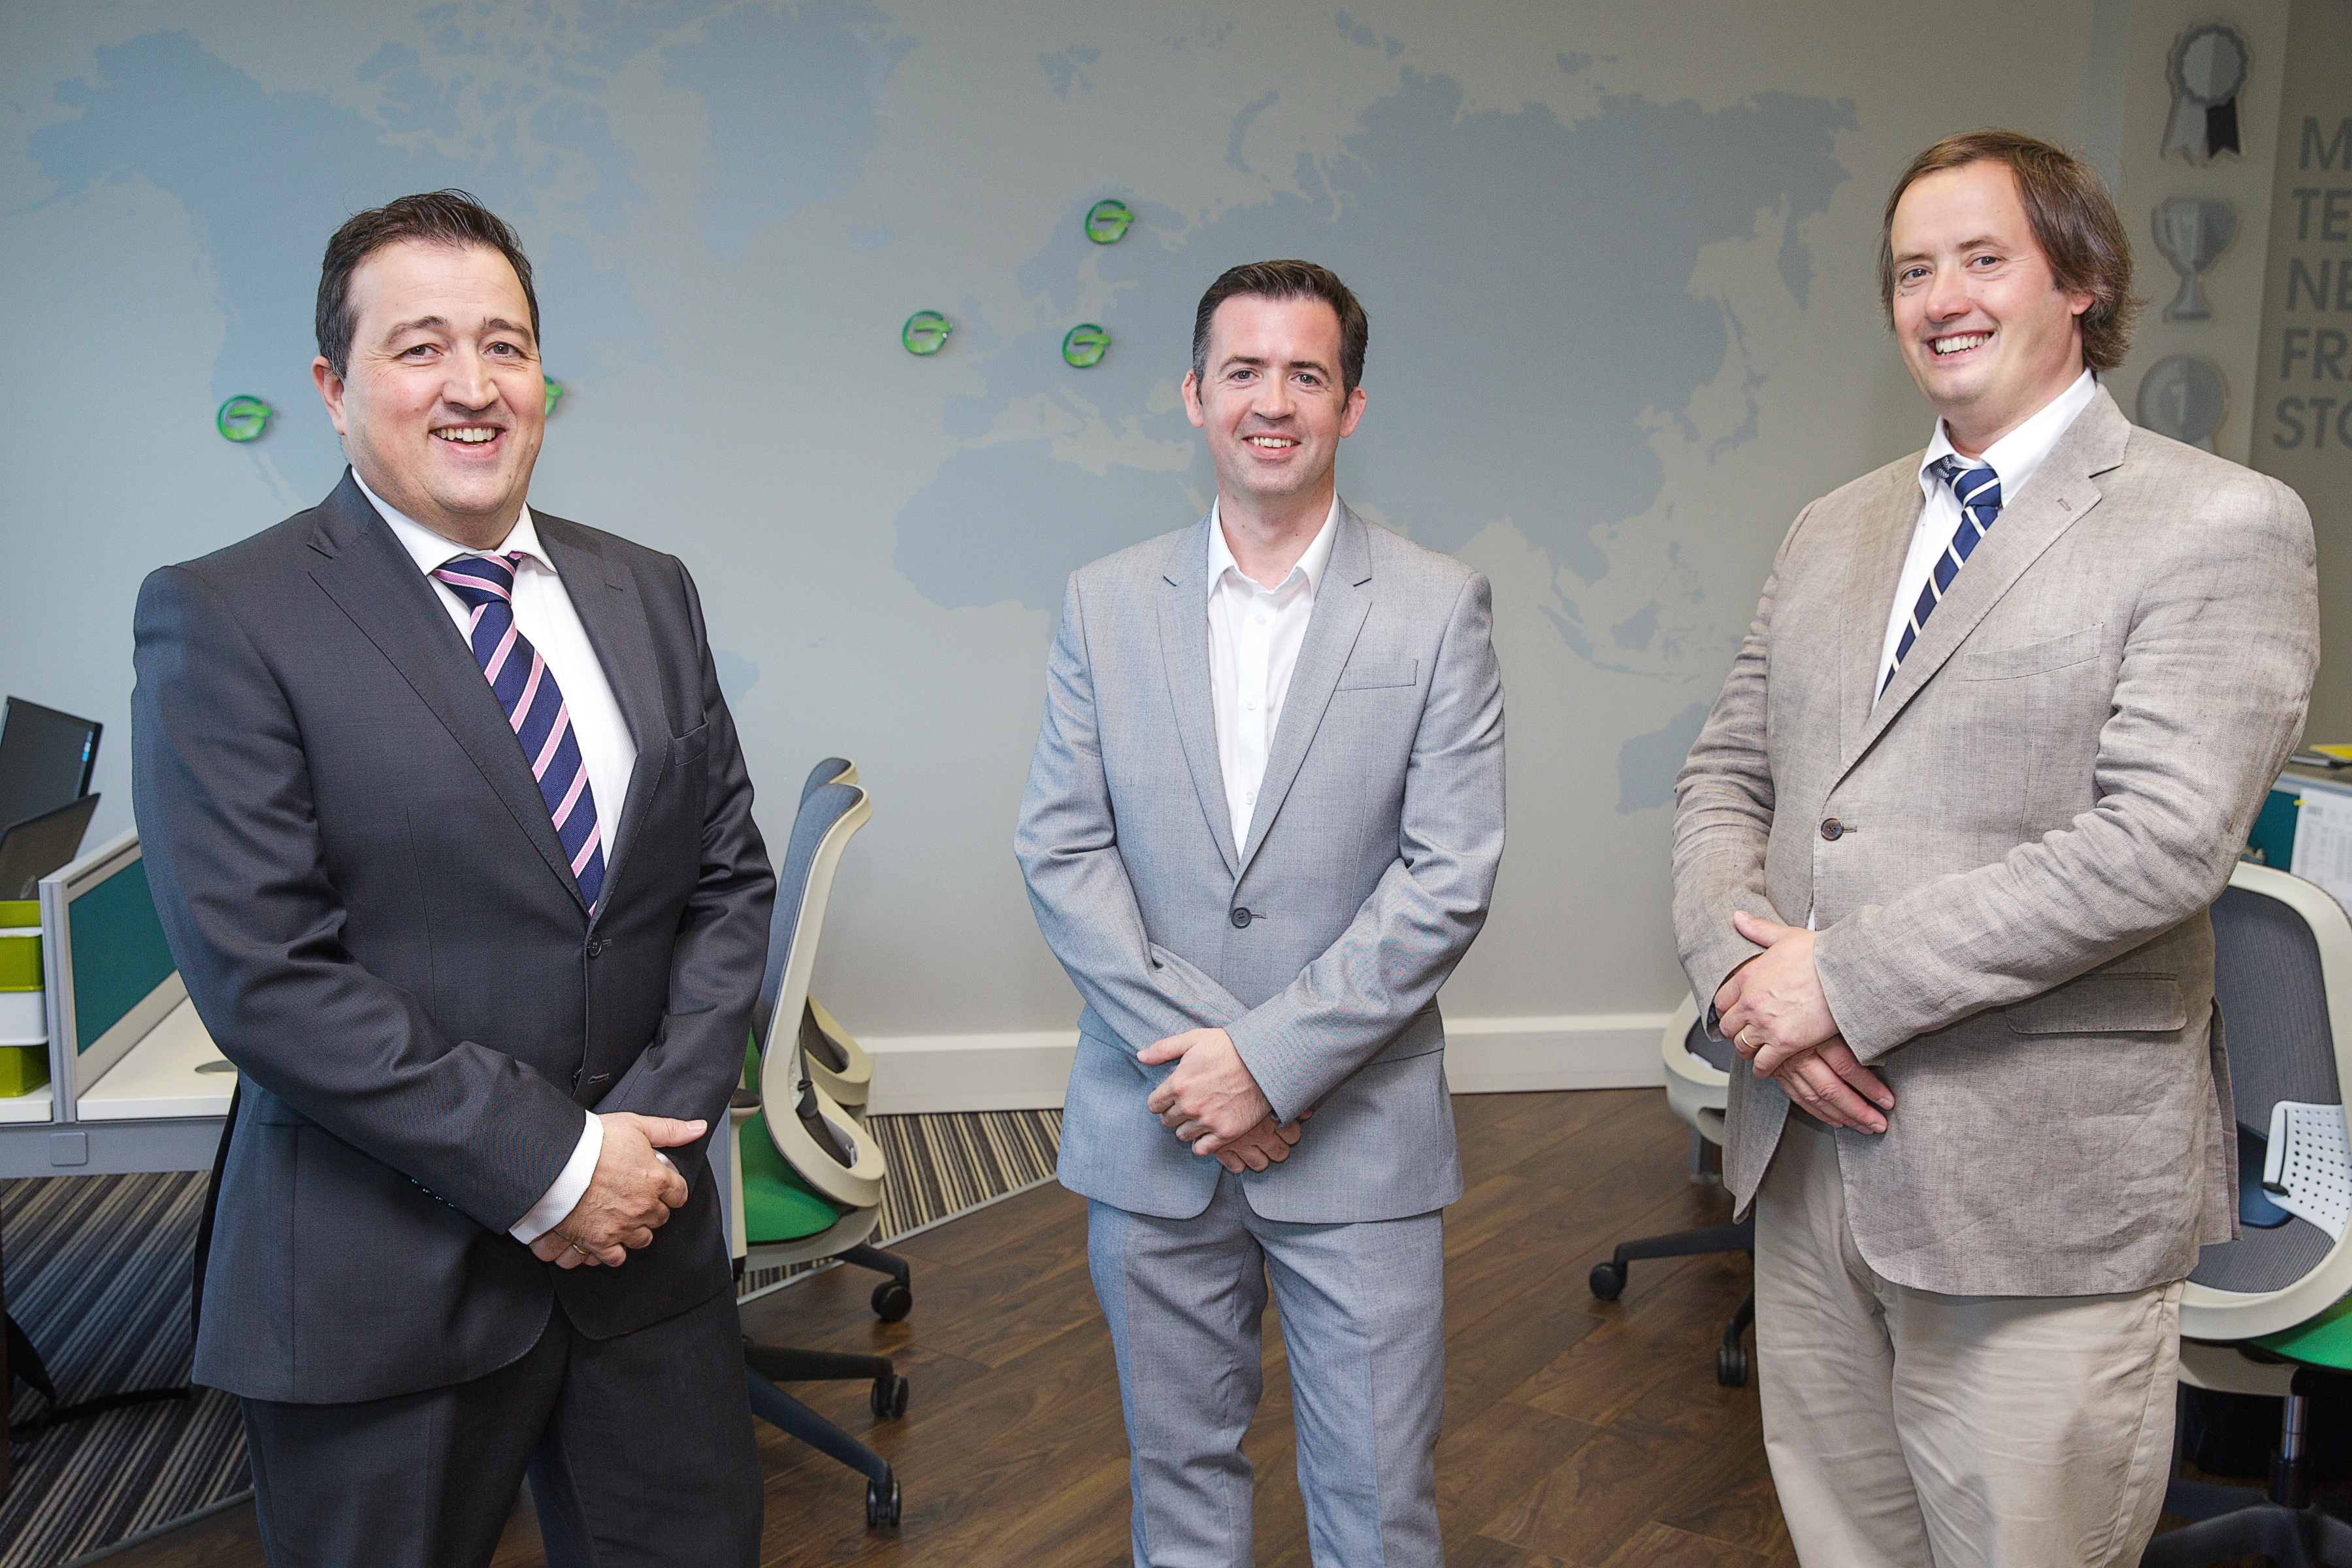 (L-R) Dennis Nordon, Managing Director - David O'Coimin, Global Business Development Director - Clive Gilmore, Chief Executive Officer